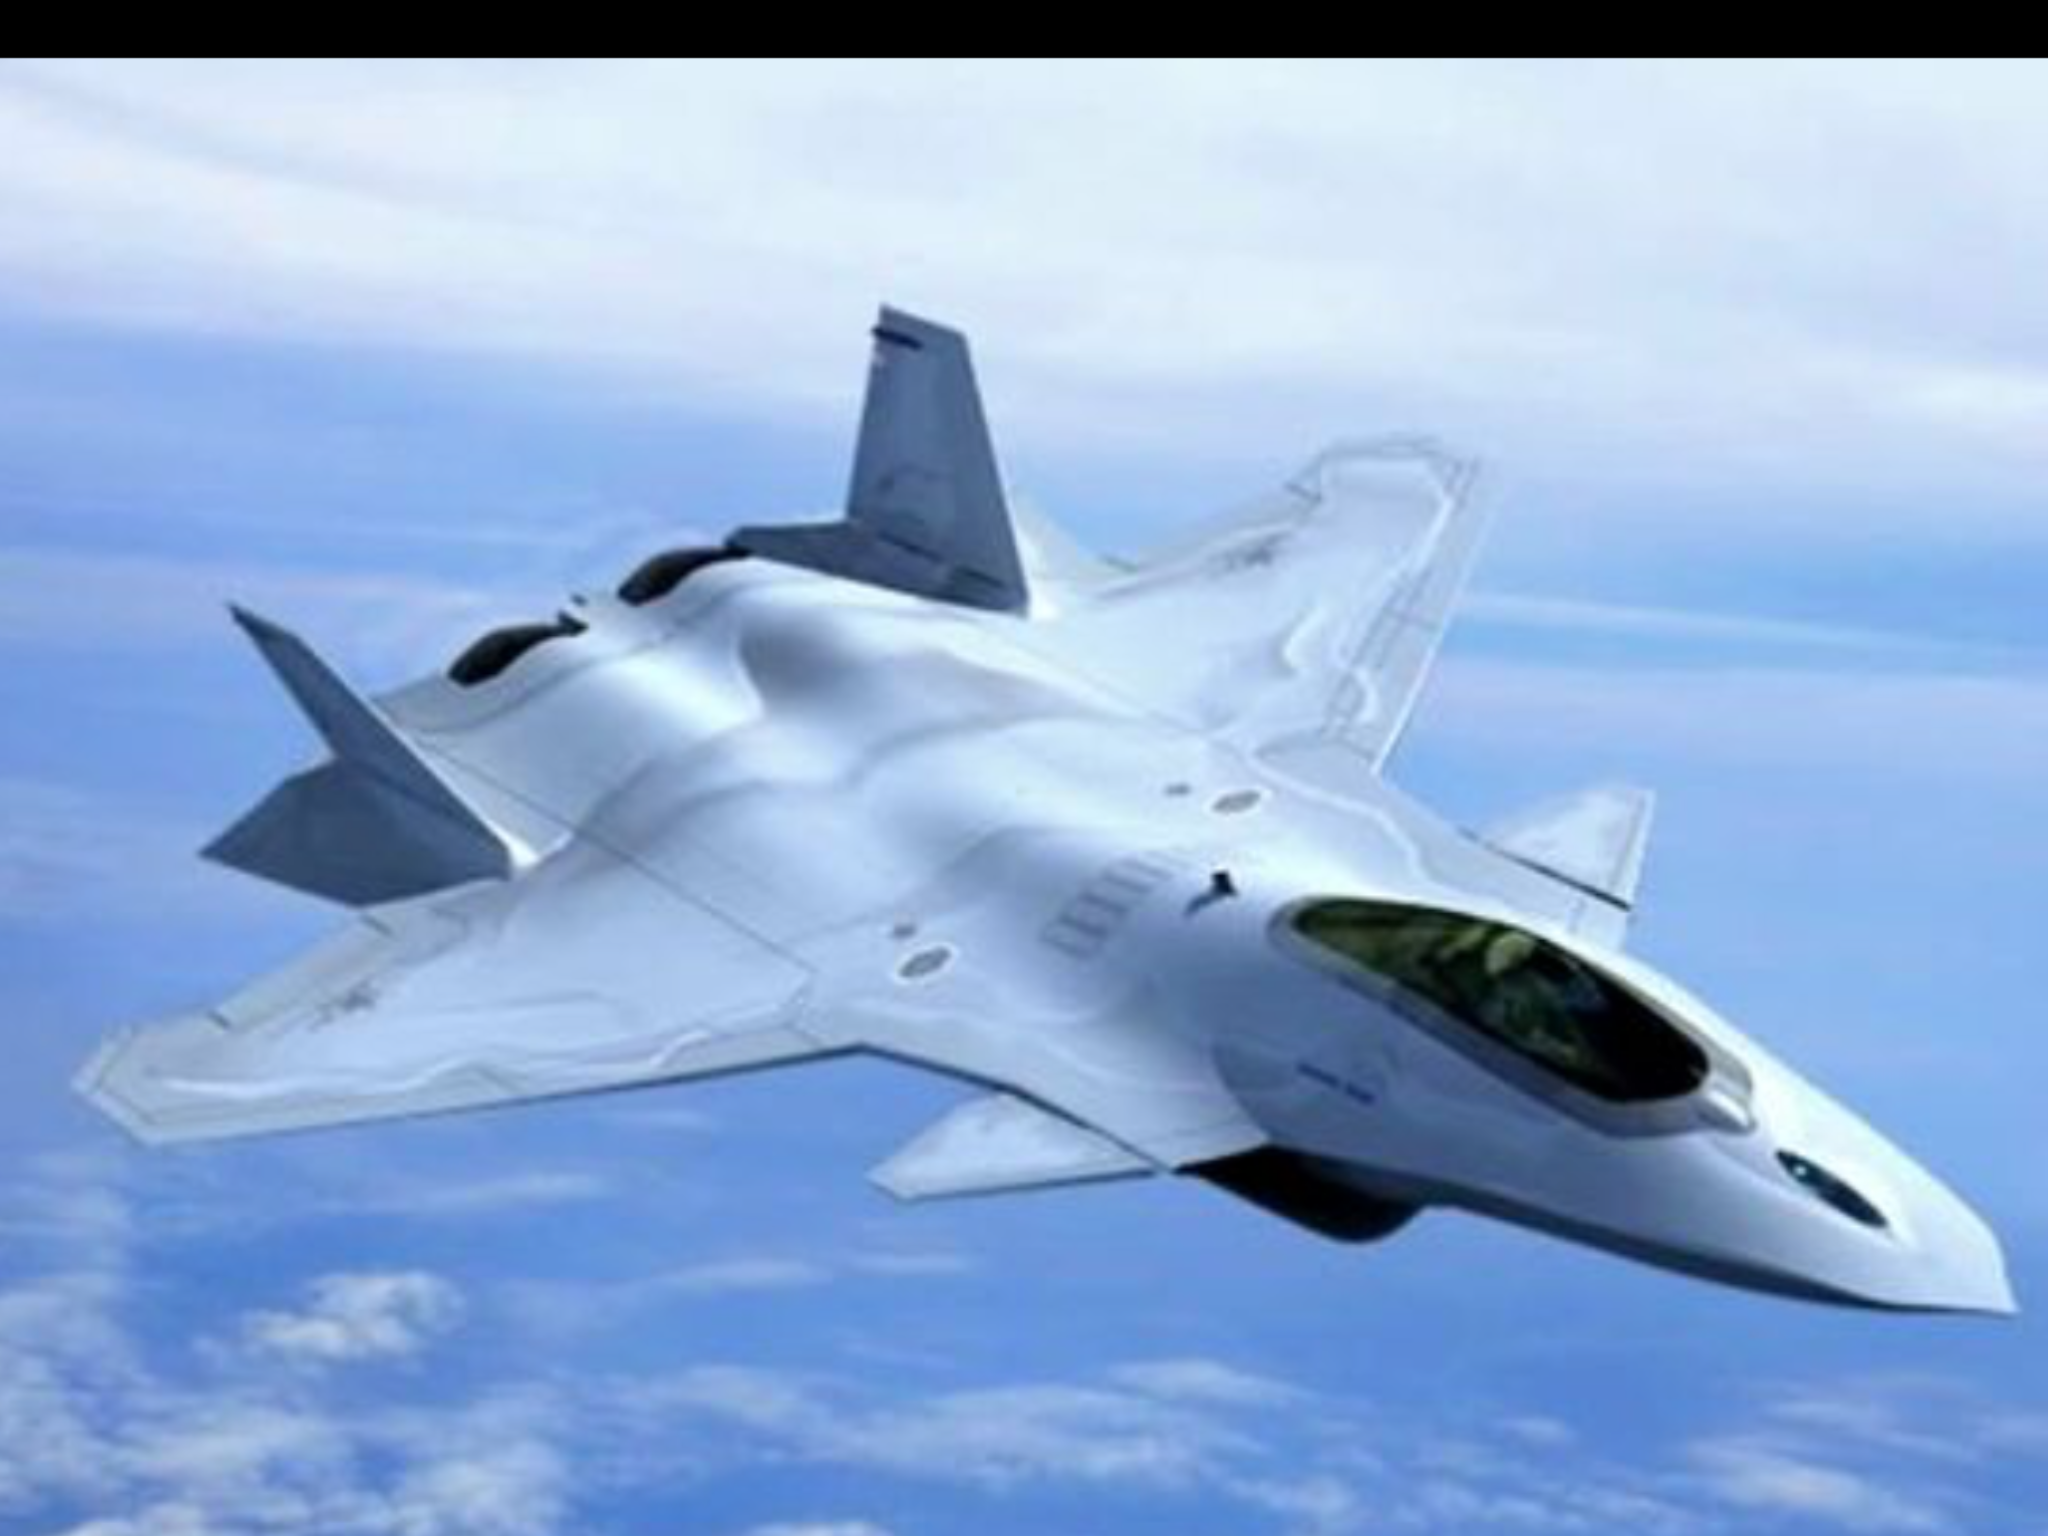 With the recent advances in technology and design aircraft concepts - One New Concept By European Aerospace Giant Airbus Is A Stealthy Two Seater At A Briefing In Germany Airbus Discussed A Possible Replacement For The